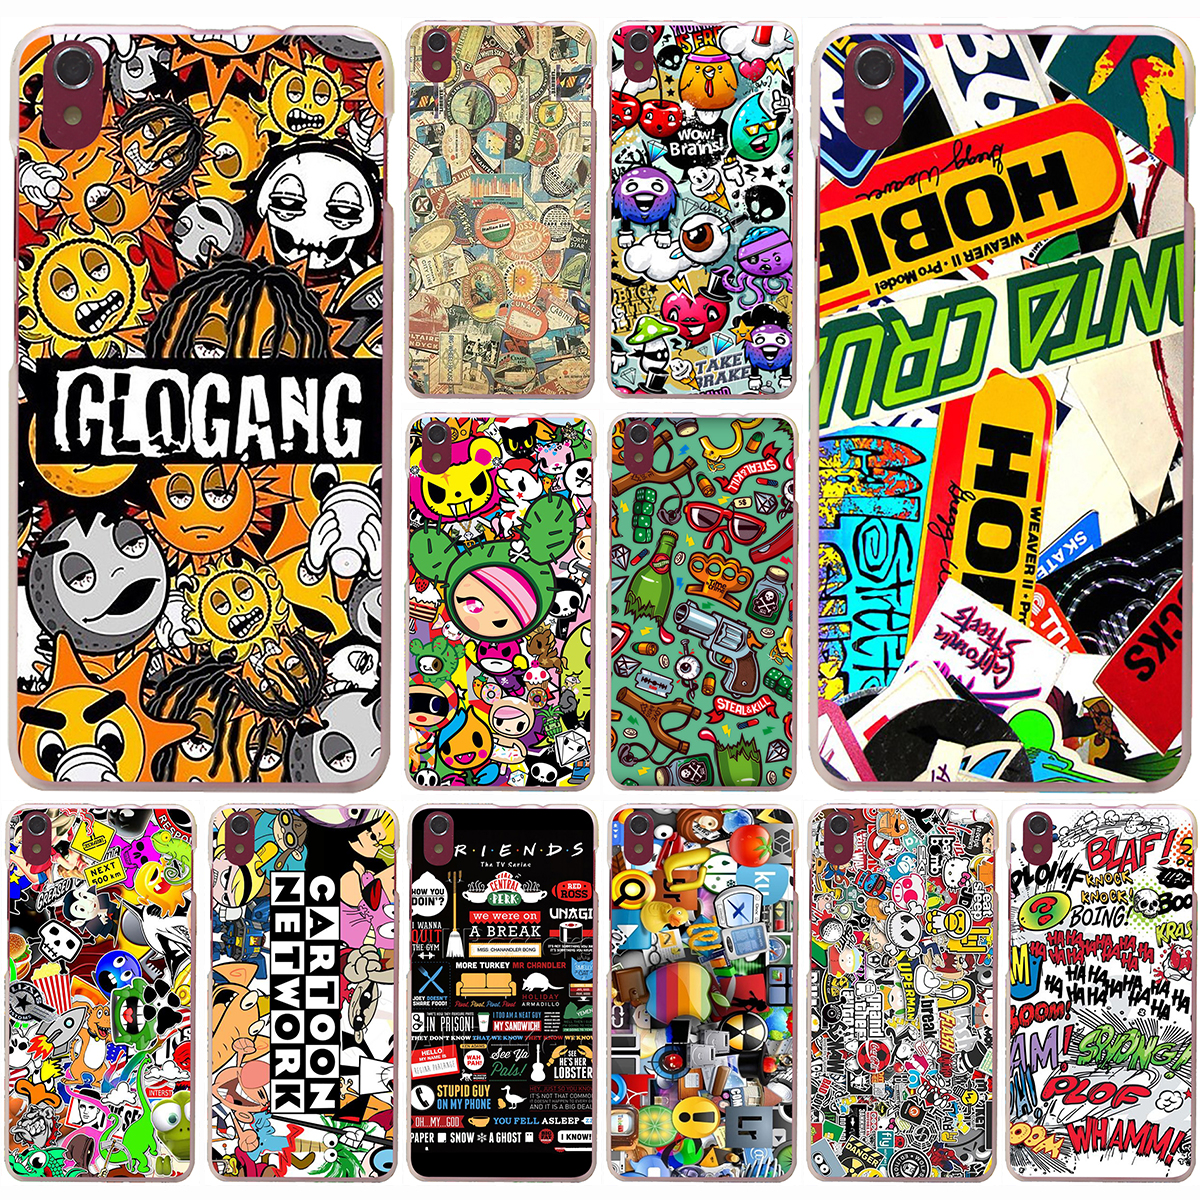 Design poster k3 - Panel Pencil Skirts Poster Friends Hard Case For Lenovo S90 S60 S850 K3 K4 K5 K6